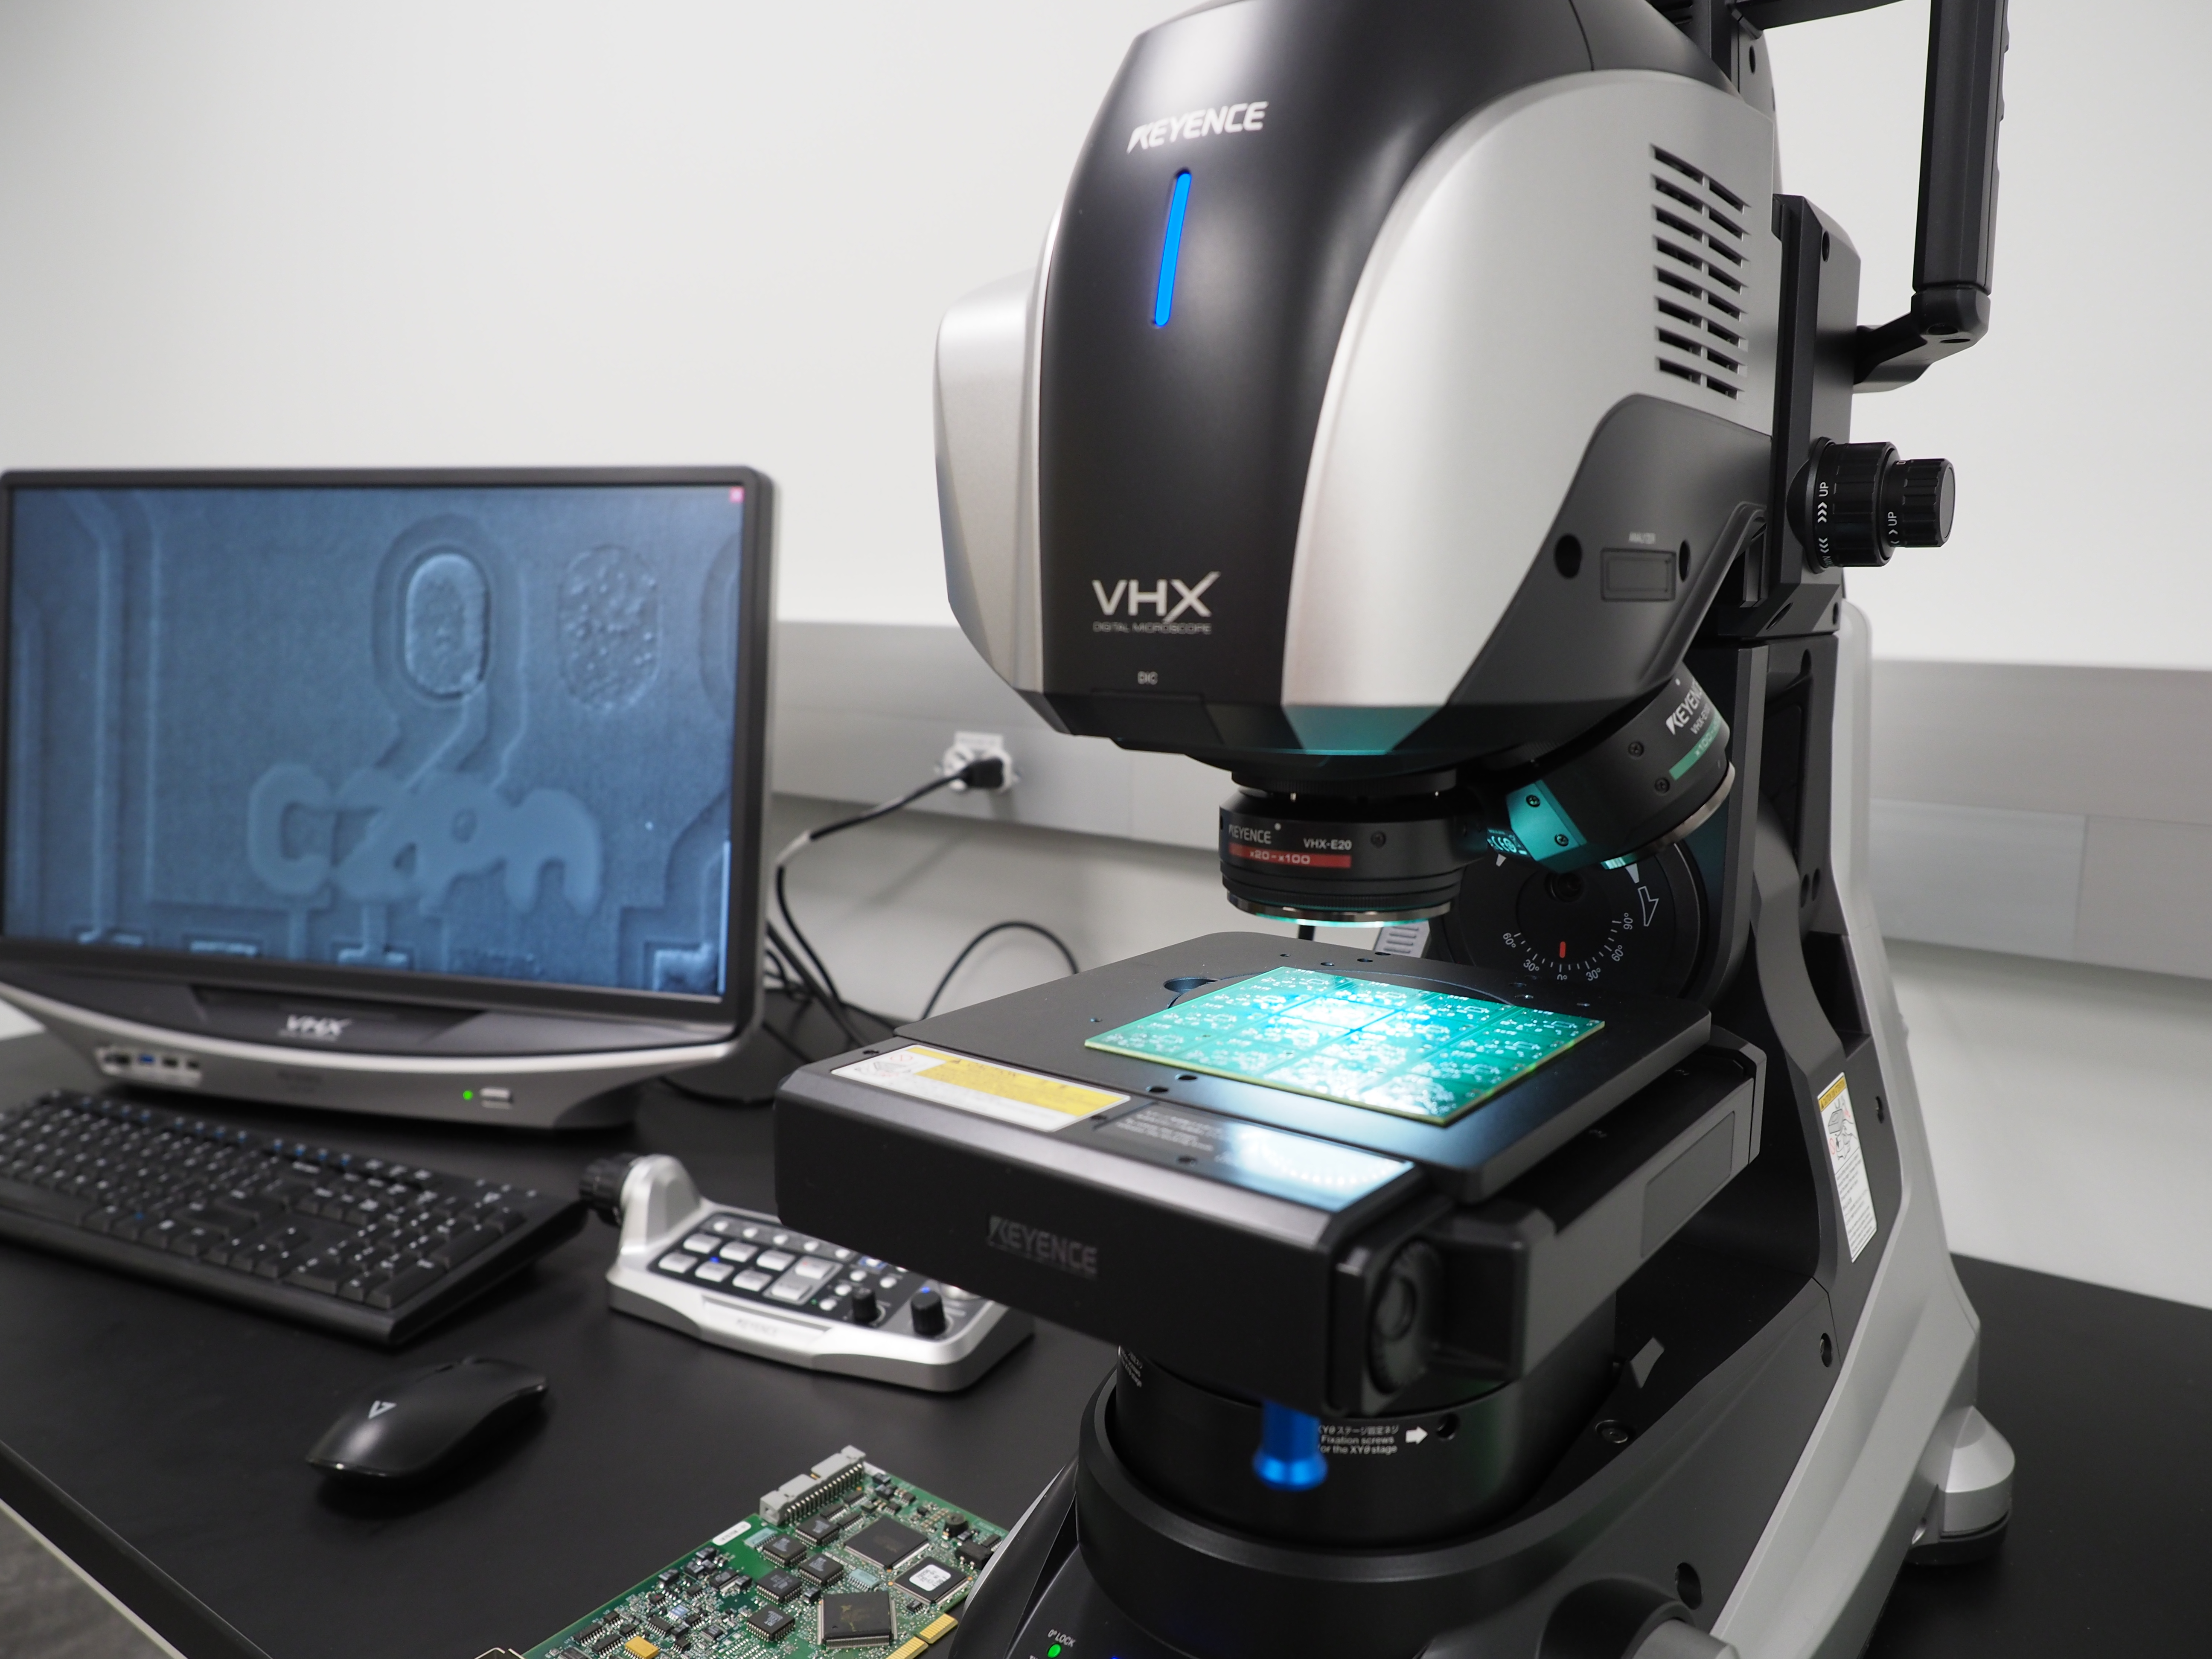 Image of VHX Digital Microscope alt